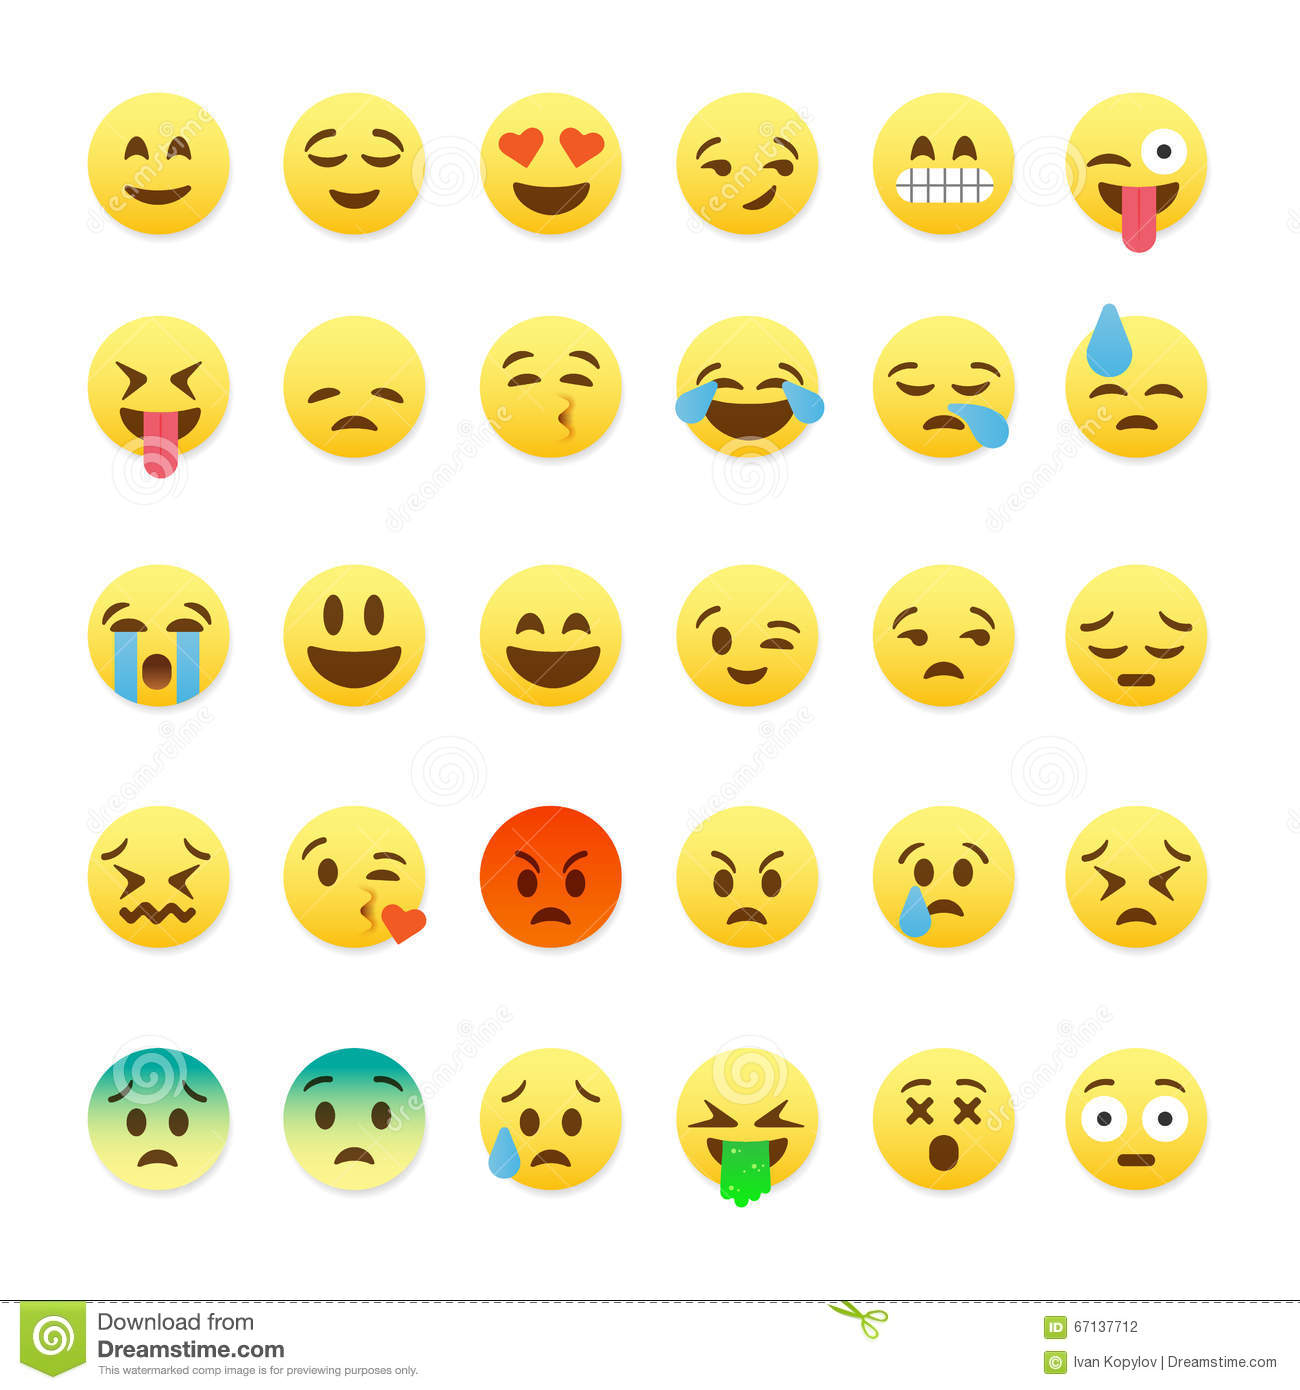 Cute Chat Wallpaper For Whatsapp Set Of Cute Smiley Emoticons Emoji Flat Design Stock